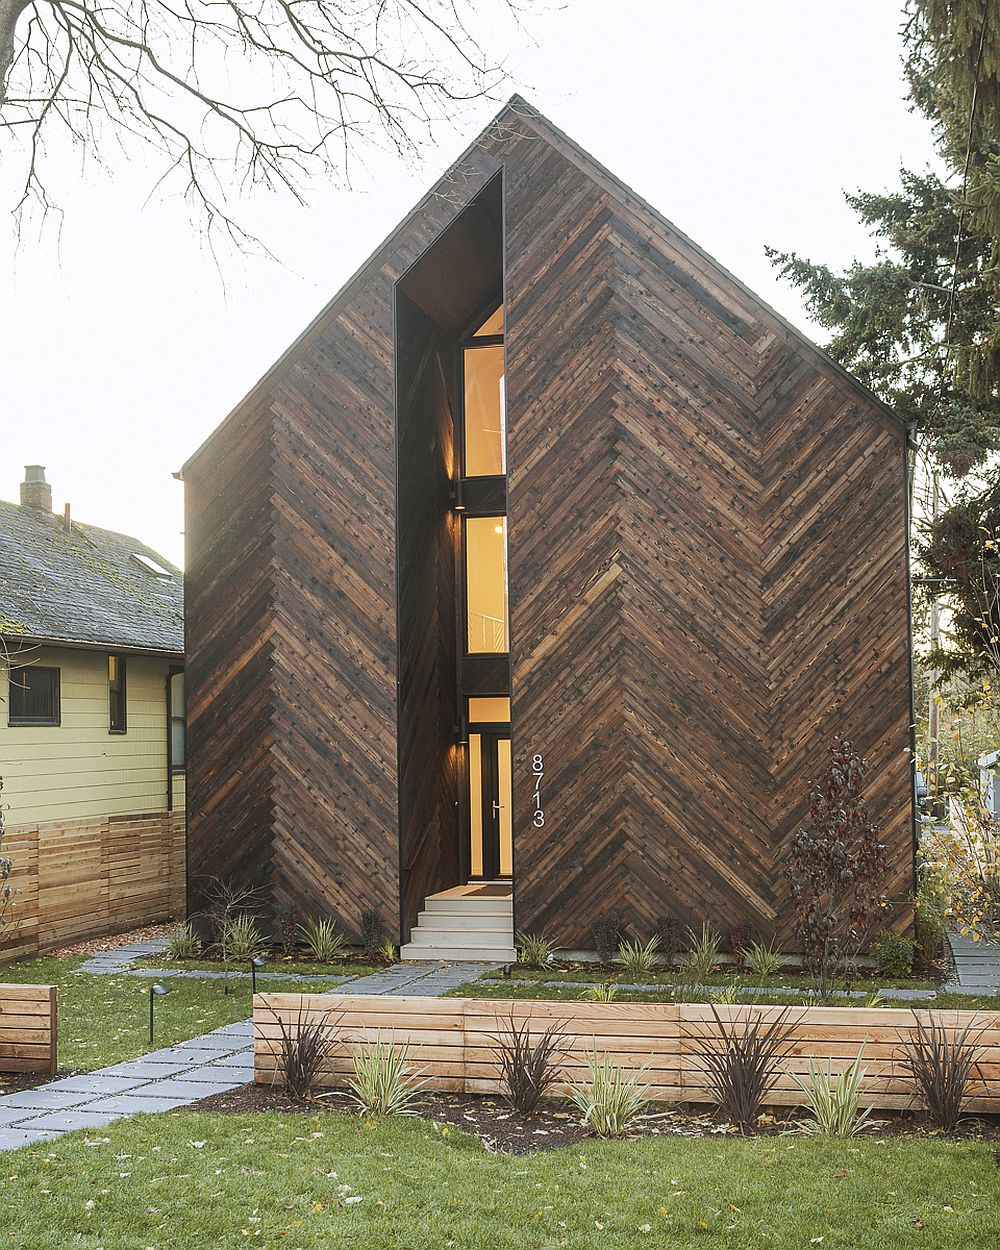 Home Design Ideas Architecture: Smart Passive House Promotes Greener Lifestyle In Seattle